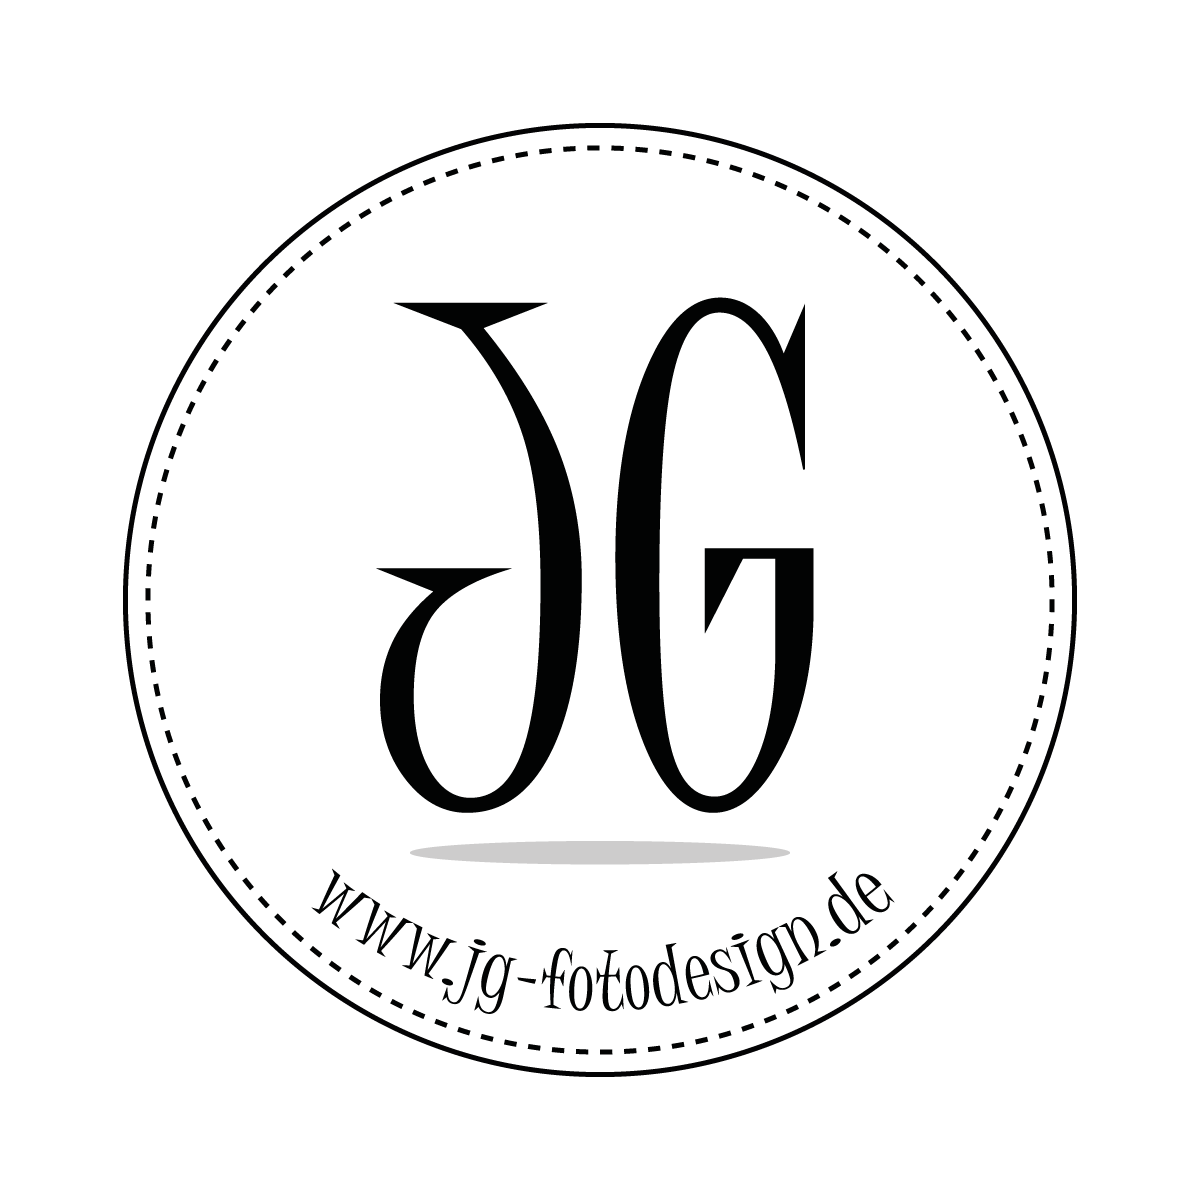 JG-Fotodesign